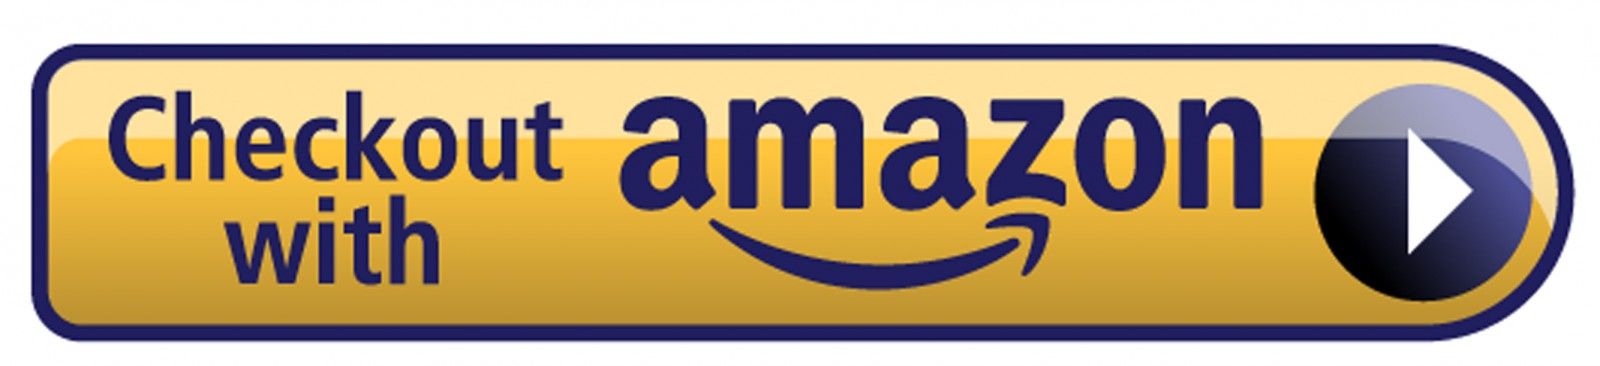 Choose Amazon during checkout!